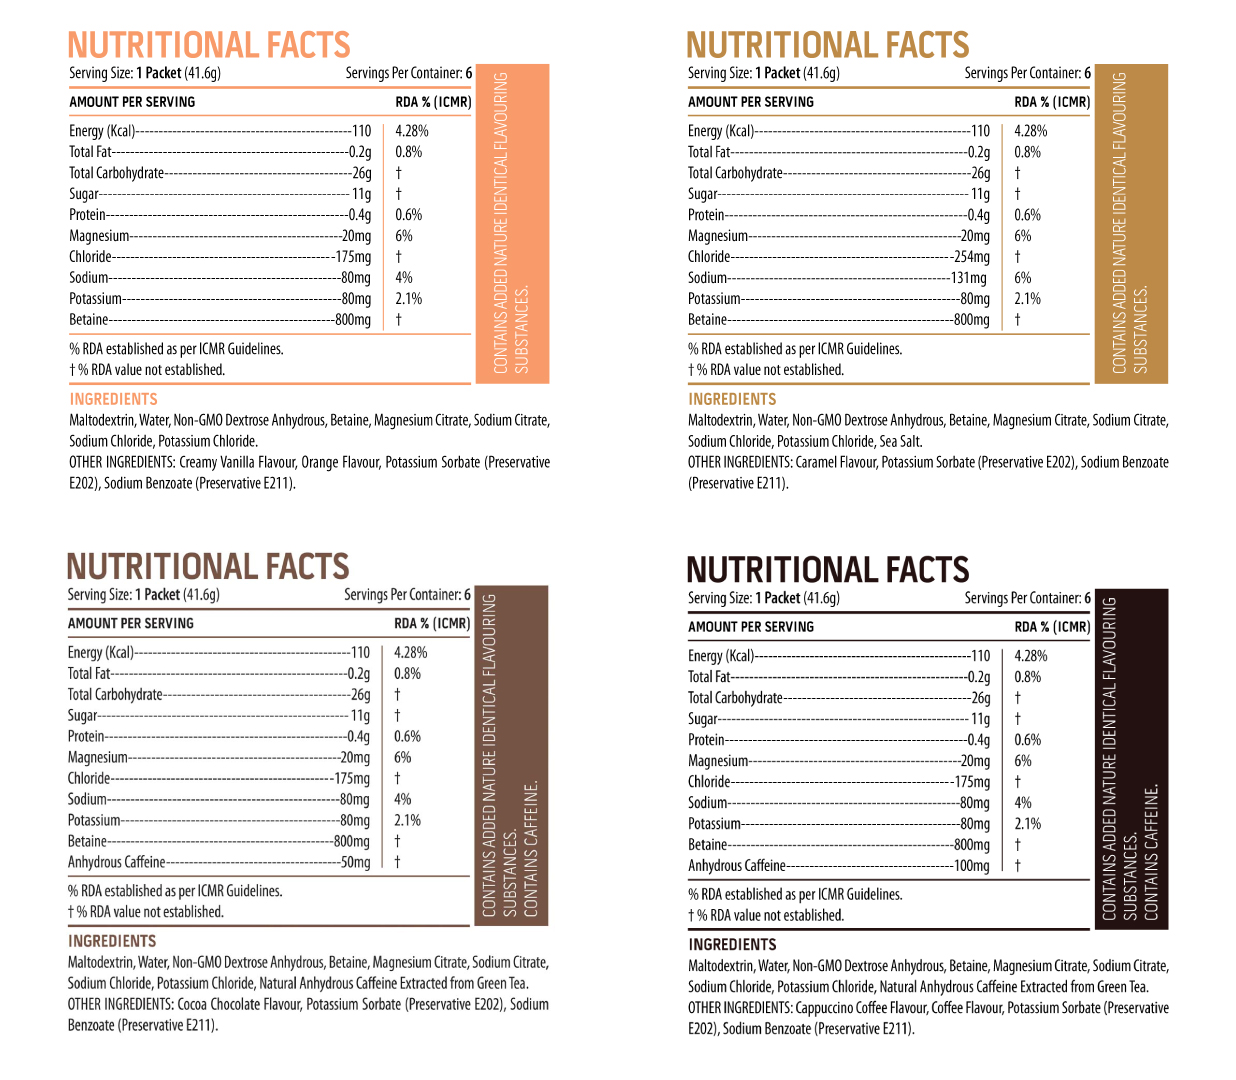 UNIVED GELS NUTRITIONAL FACTS